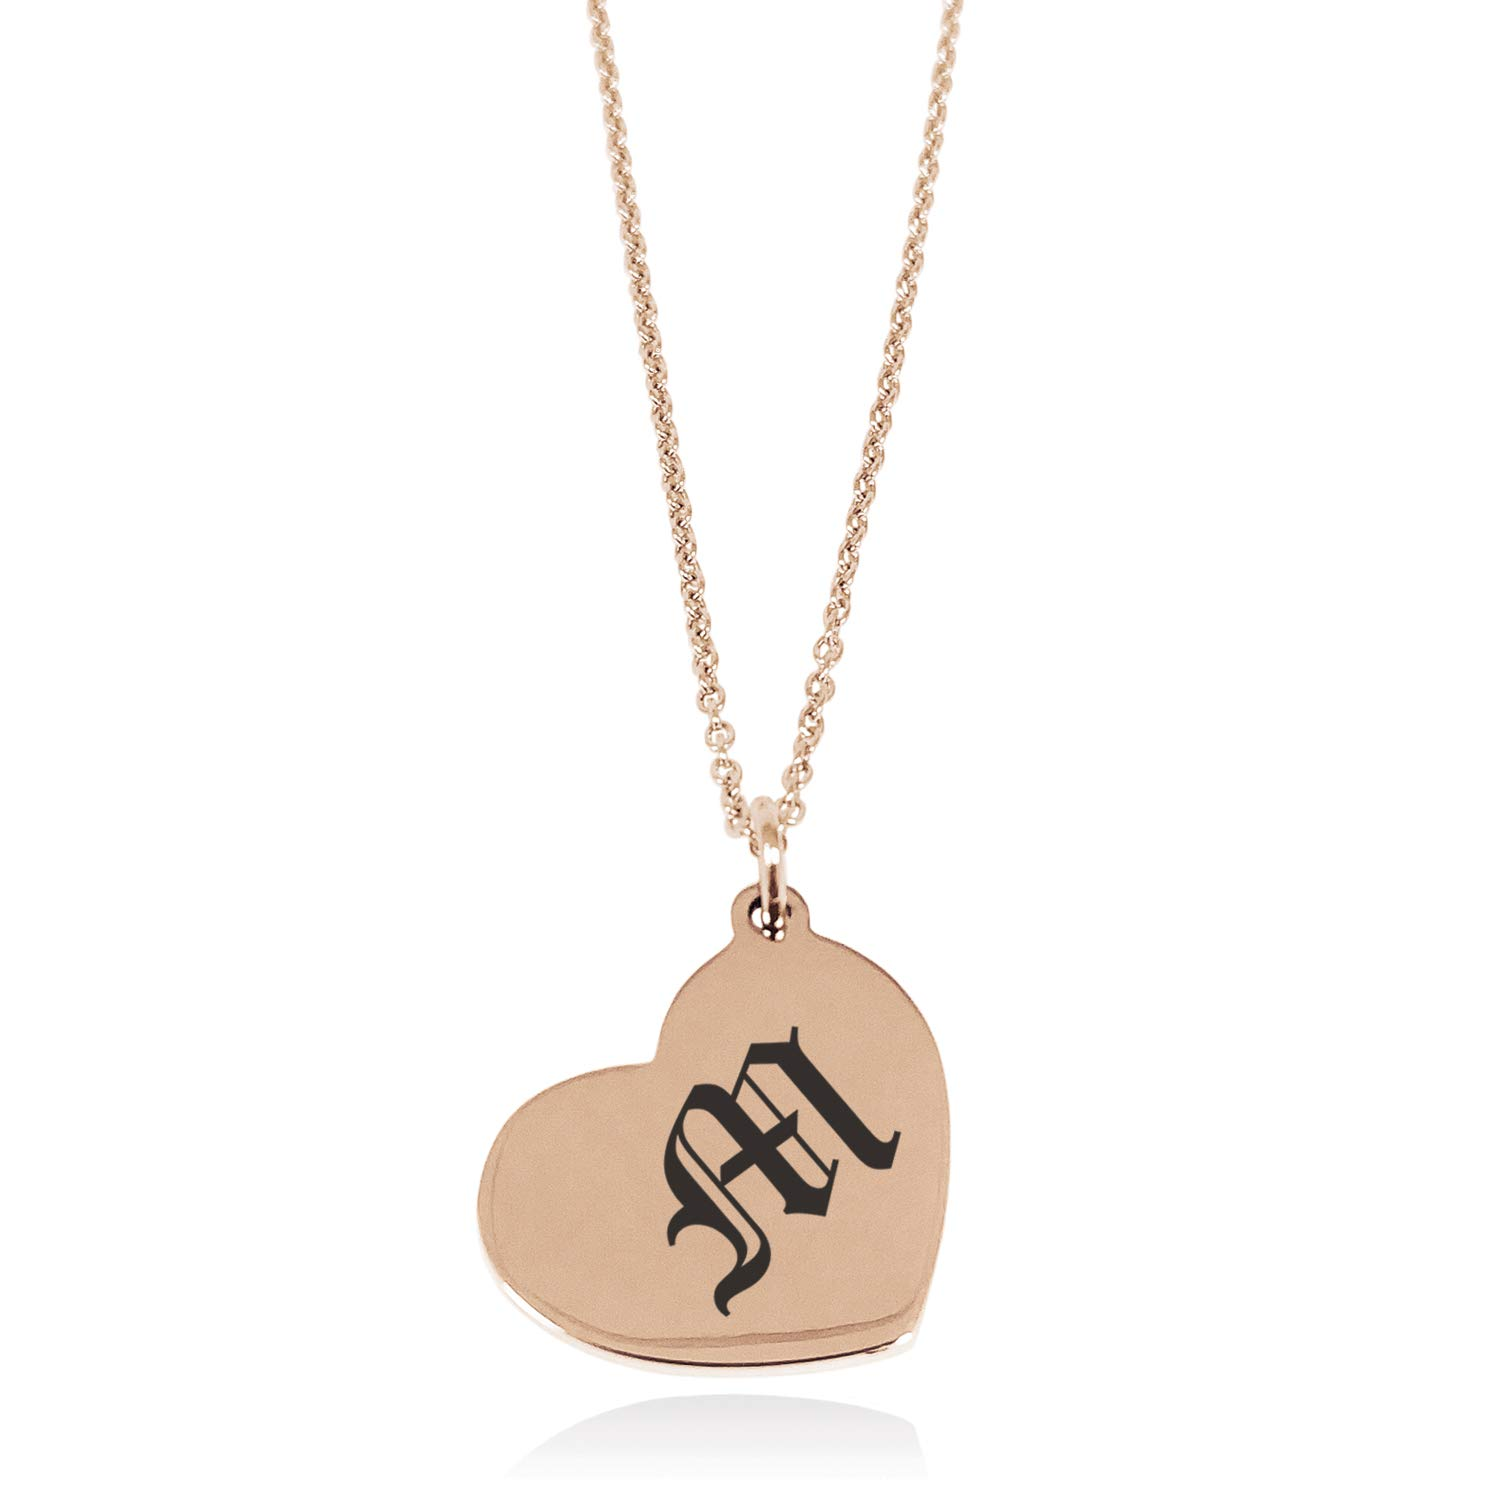 Tioneer Stainless Steel Letter M Initial Old English Monogram Floating Heart Tag Charm Pendant Necklace